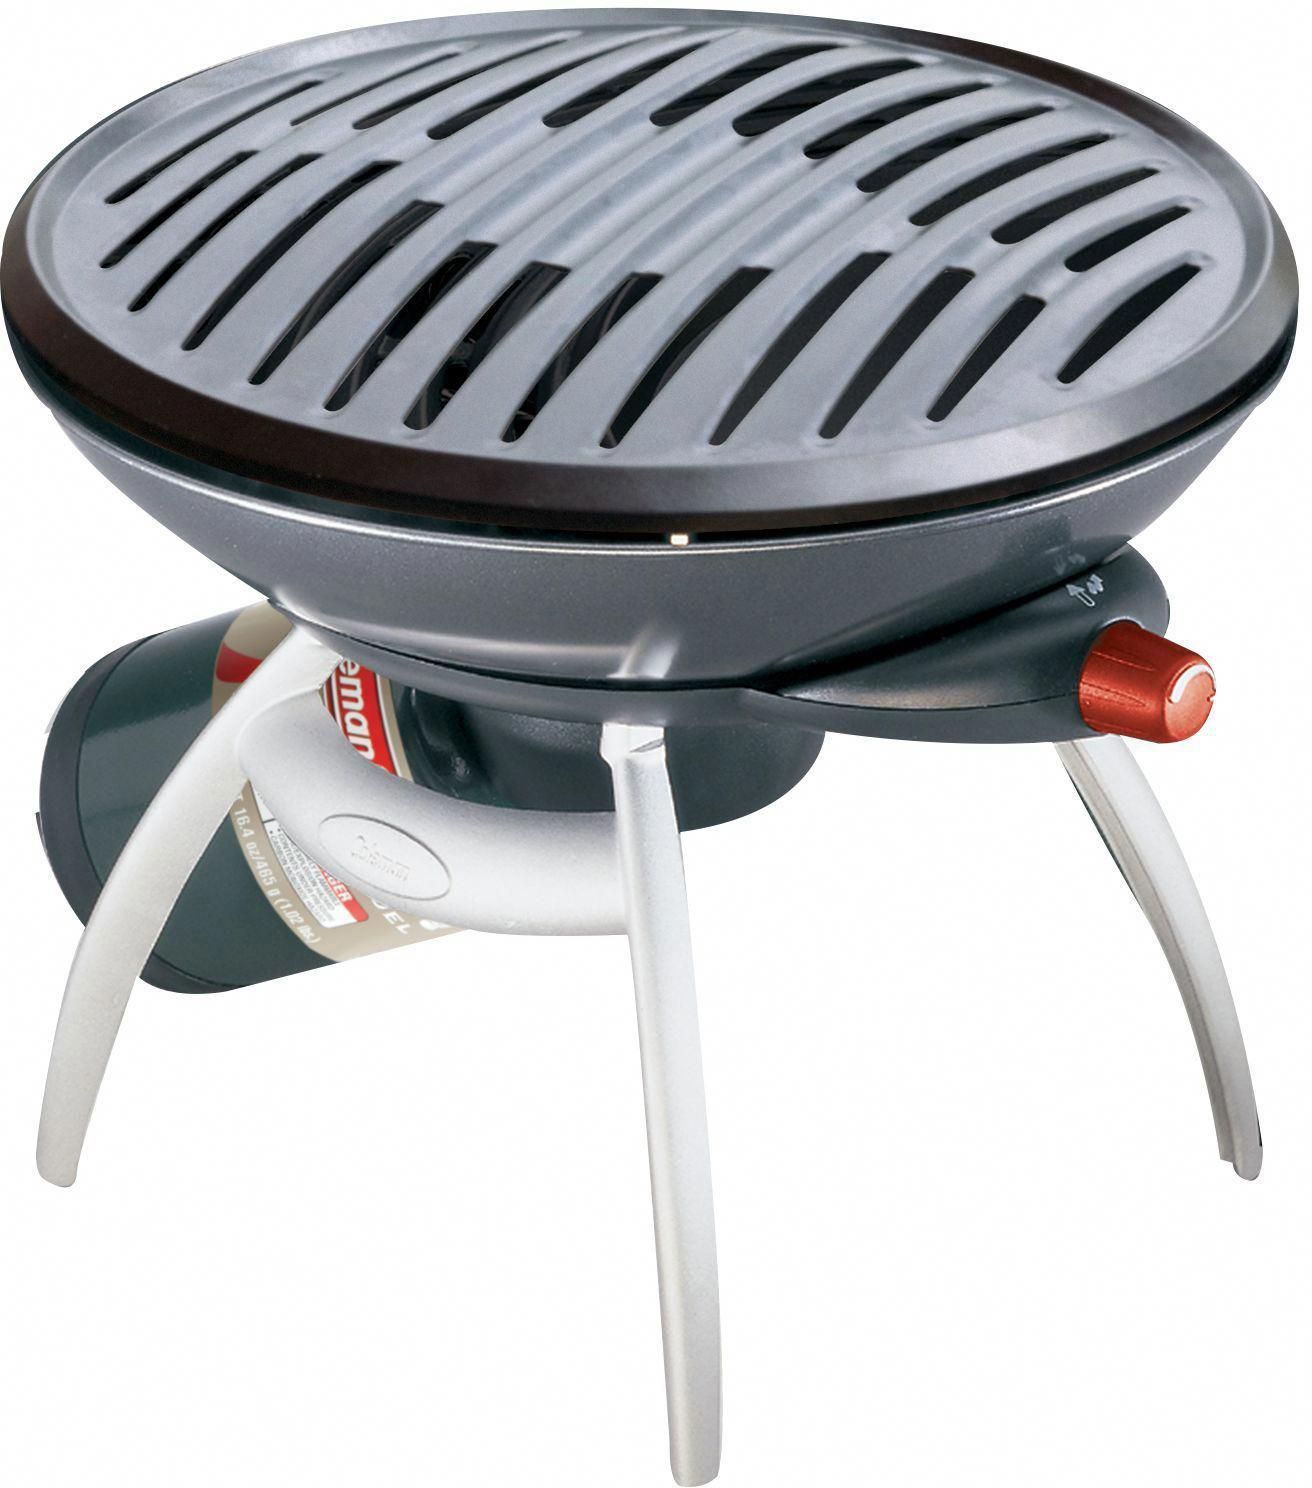 Camping Trailers For Rent Campingbythesea Info 1887904038 Campinglights Propane Grill Grilling Portable Bbq